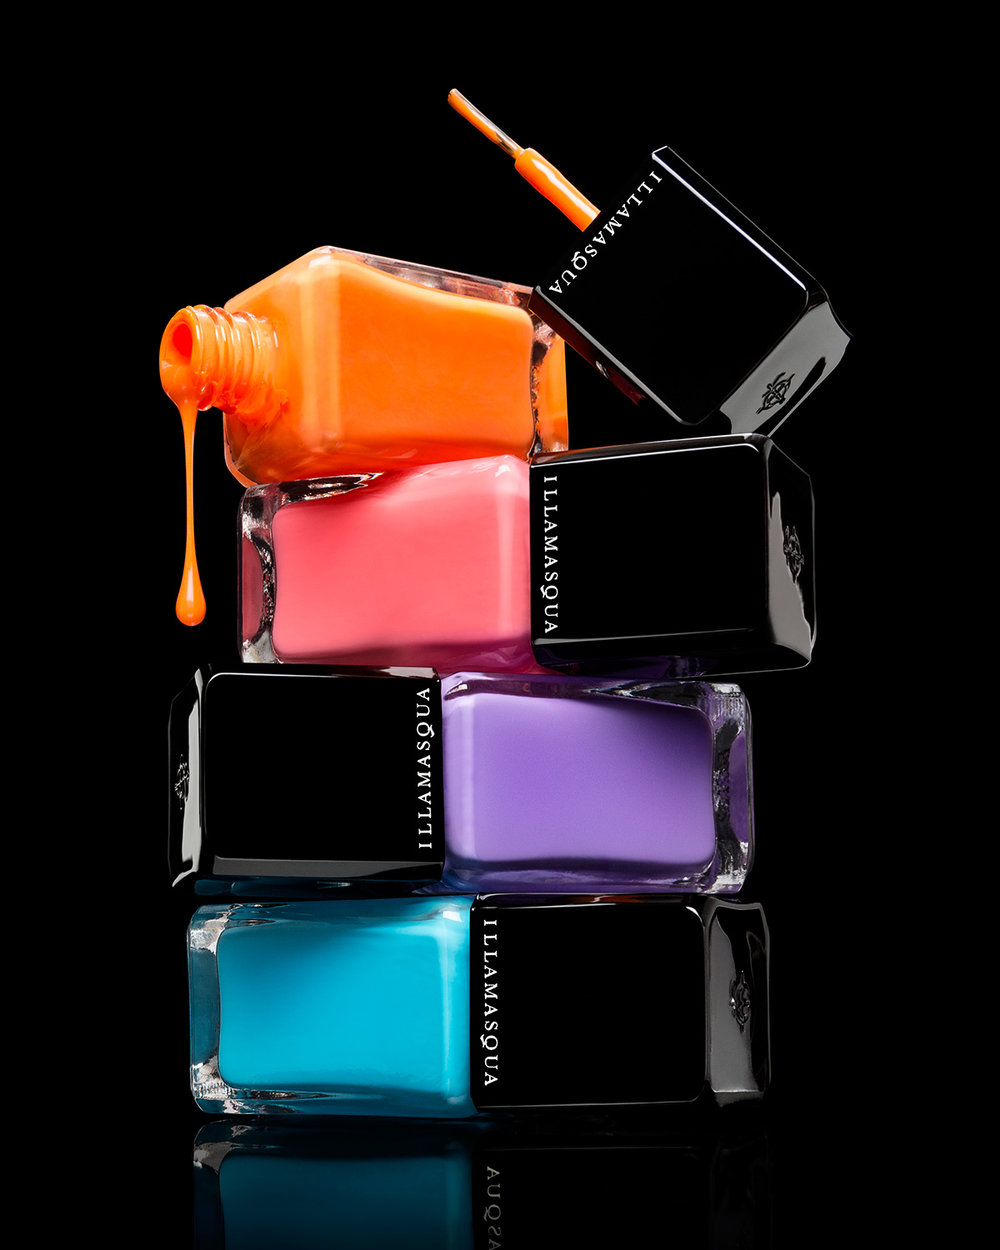 tom-medvedich-still-life-cosmetics-nail-polish-stack-01.jpg